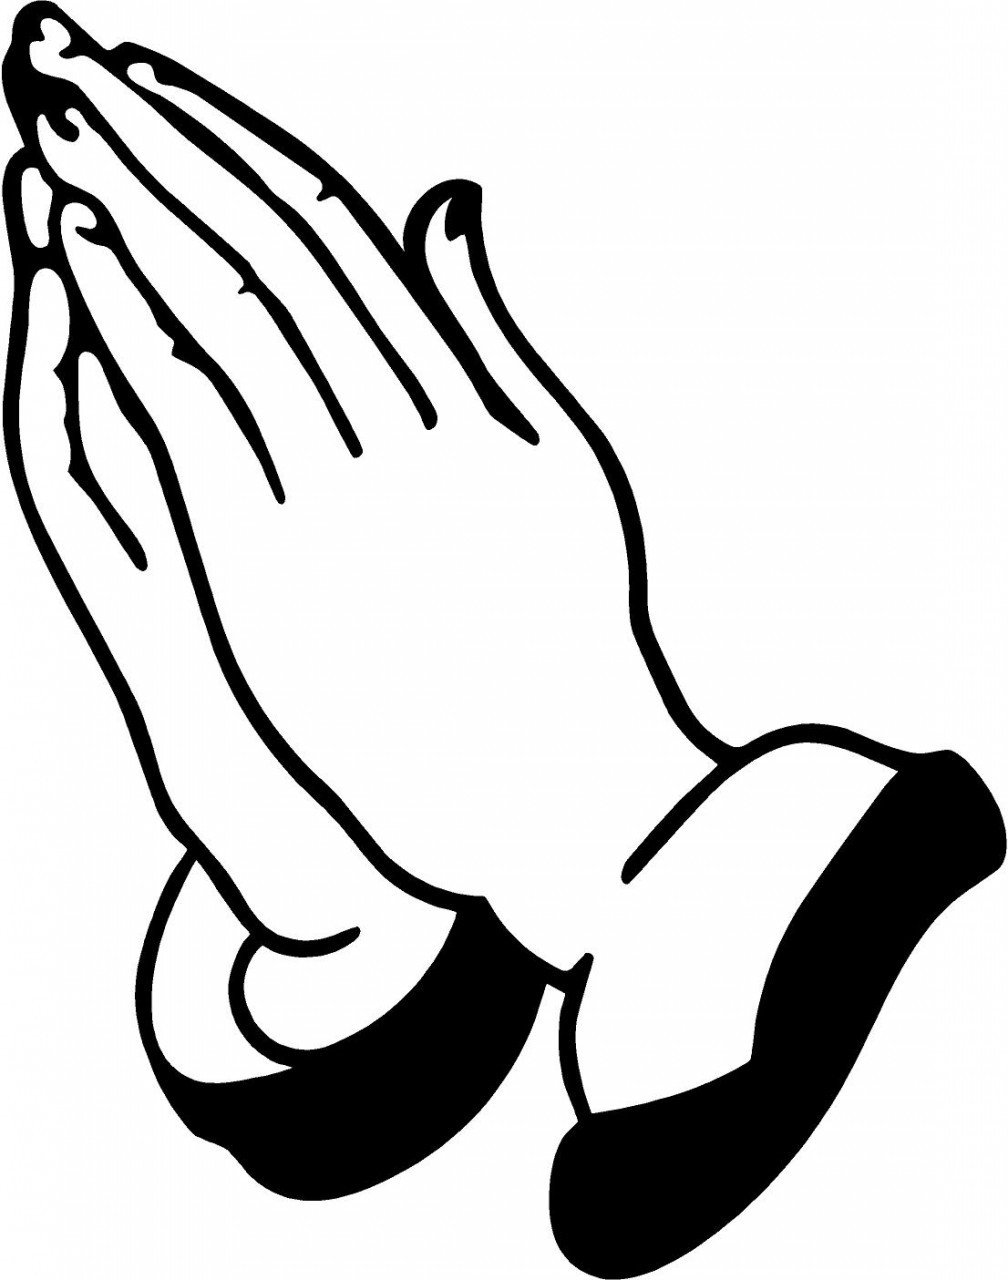 1008x1280 Best Photos Of Open Praying Hands Coloring Page